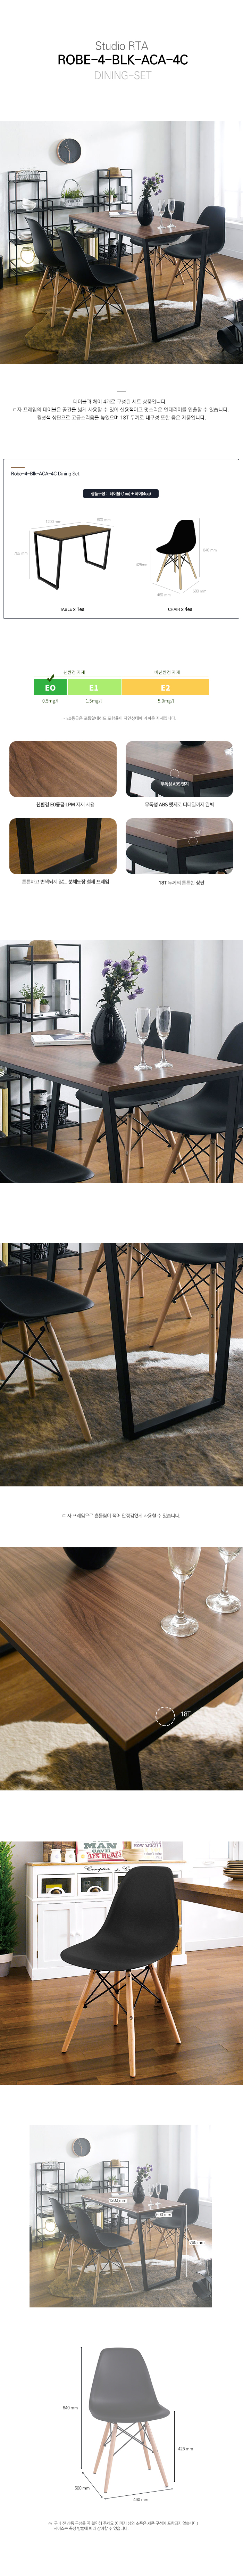 Robe-4-Blk-ACA-4C(Dining Set)_180517.jpg